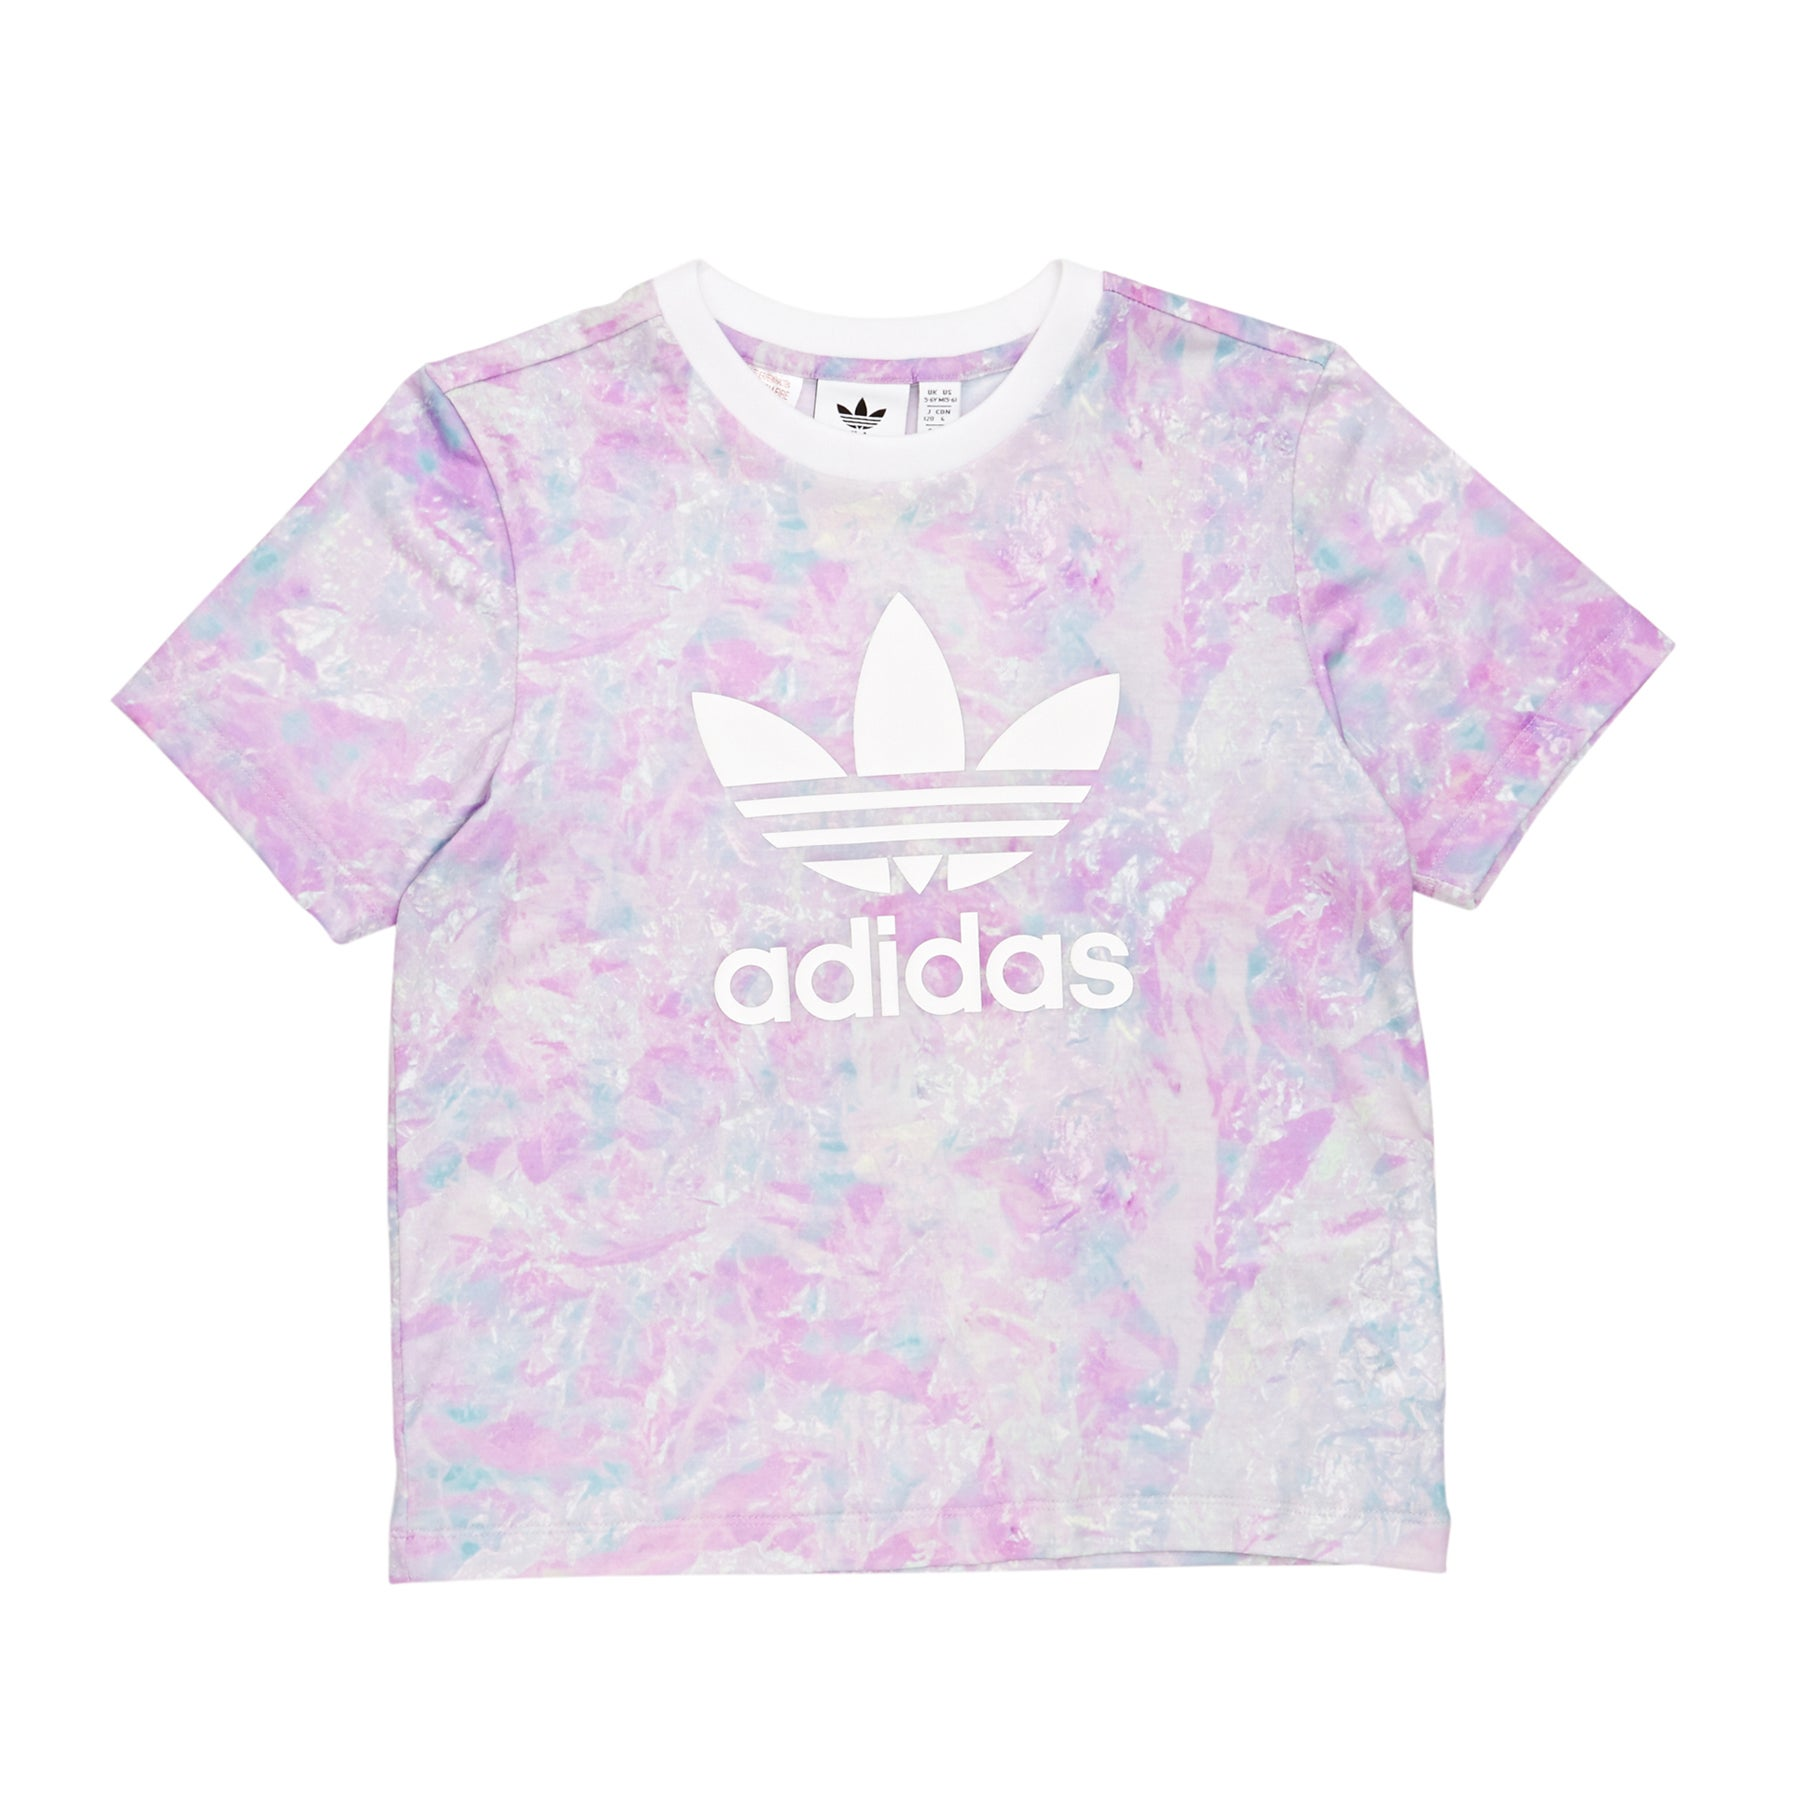 Adidas Originals Graphic Girls Short Sleeve T-Shirt - Multicolor White